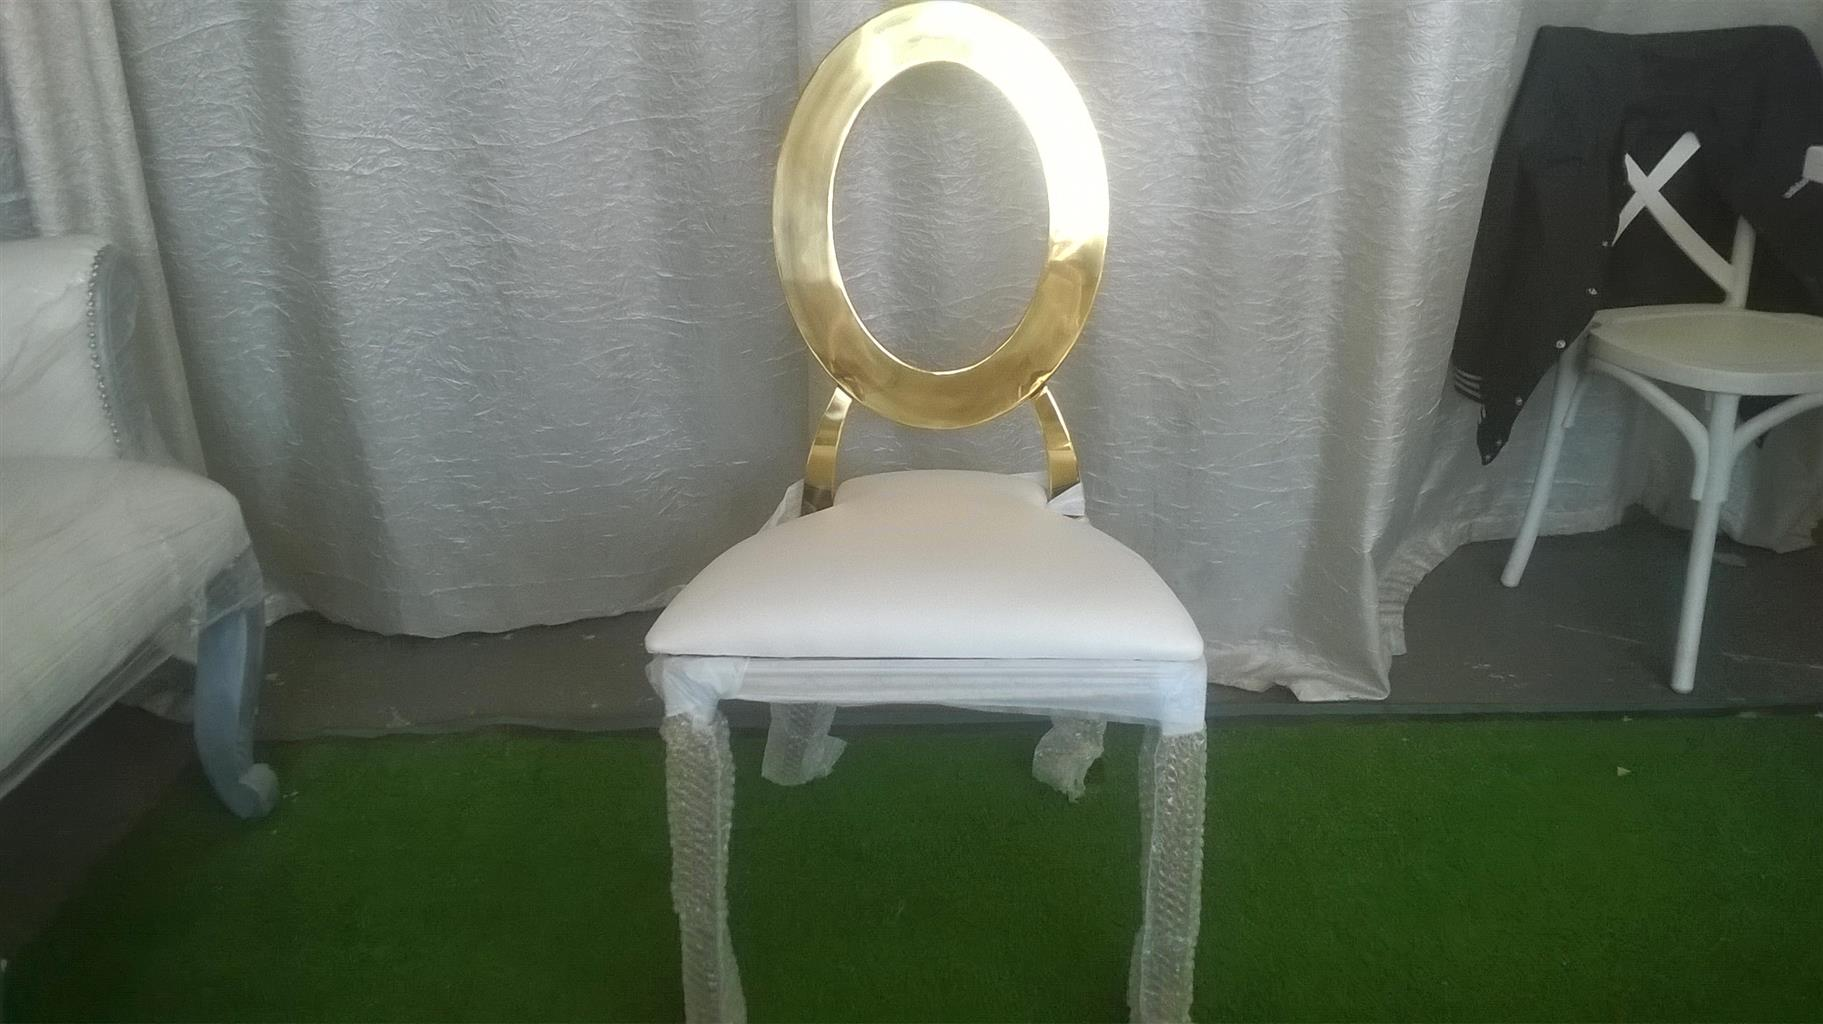 NEW GOLD ROUNDBACK CHAIRS FOR SALE AT WHOLESALE PRICES.